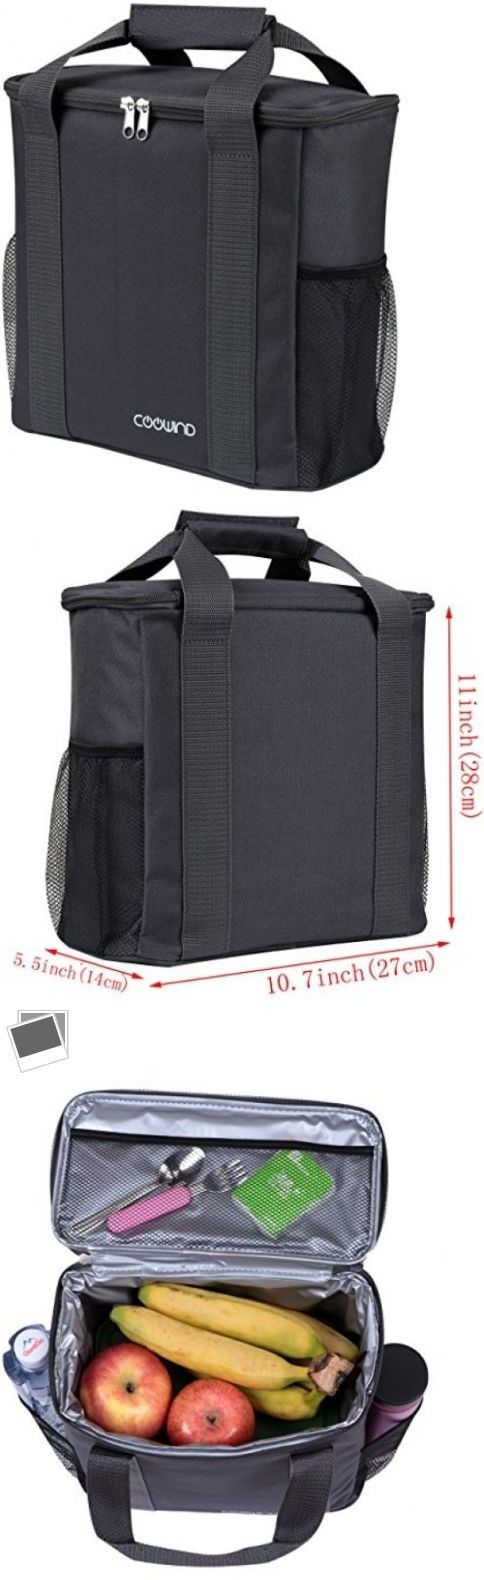 Lunch Containers 101428: 16 Can Insulated Large Lunch Box Cooler Picnic Bag Tote 11 X 10.7 X 5.5 (Gray) -> BUY IT NOW ONLY: $31.99 on eBay!